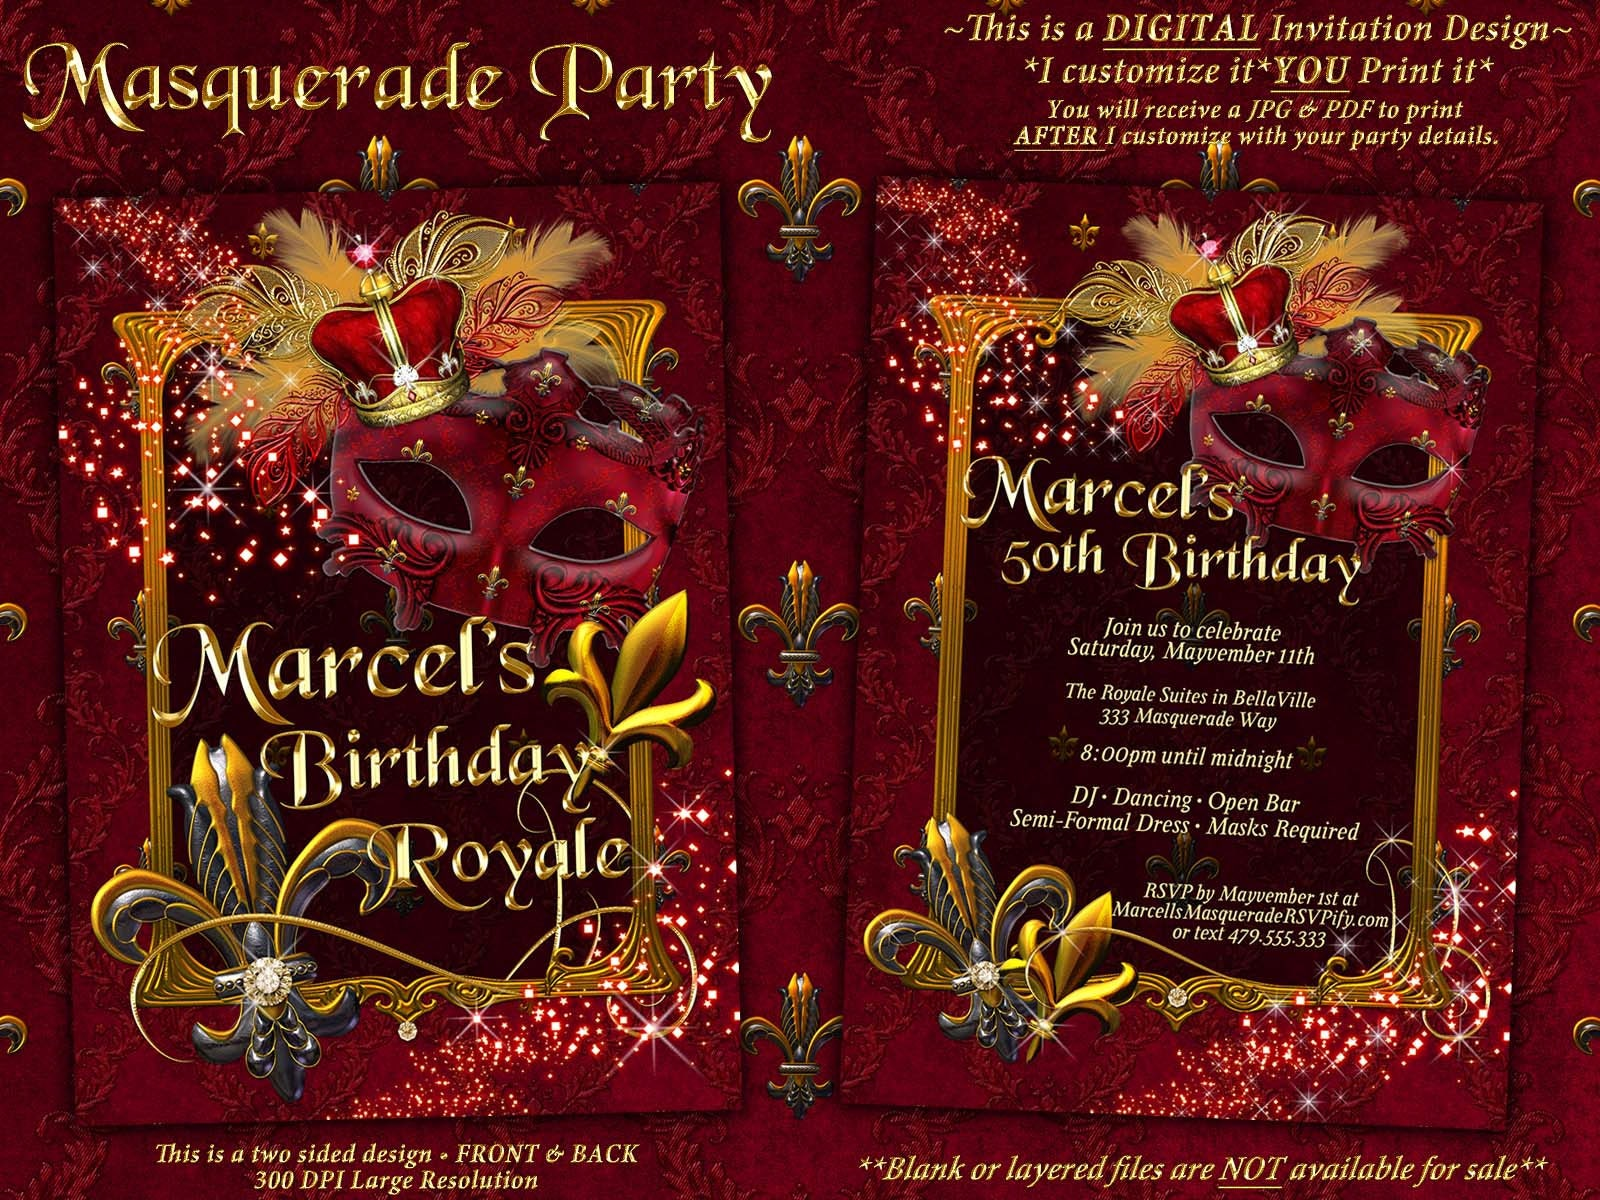 Mens Masquerade Party Invitation Royale Red Mardi Gras Party | Etsy